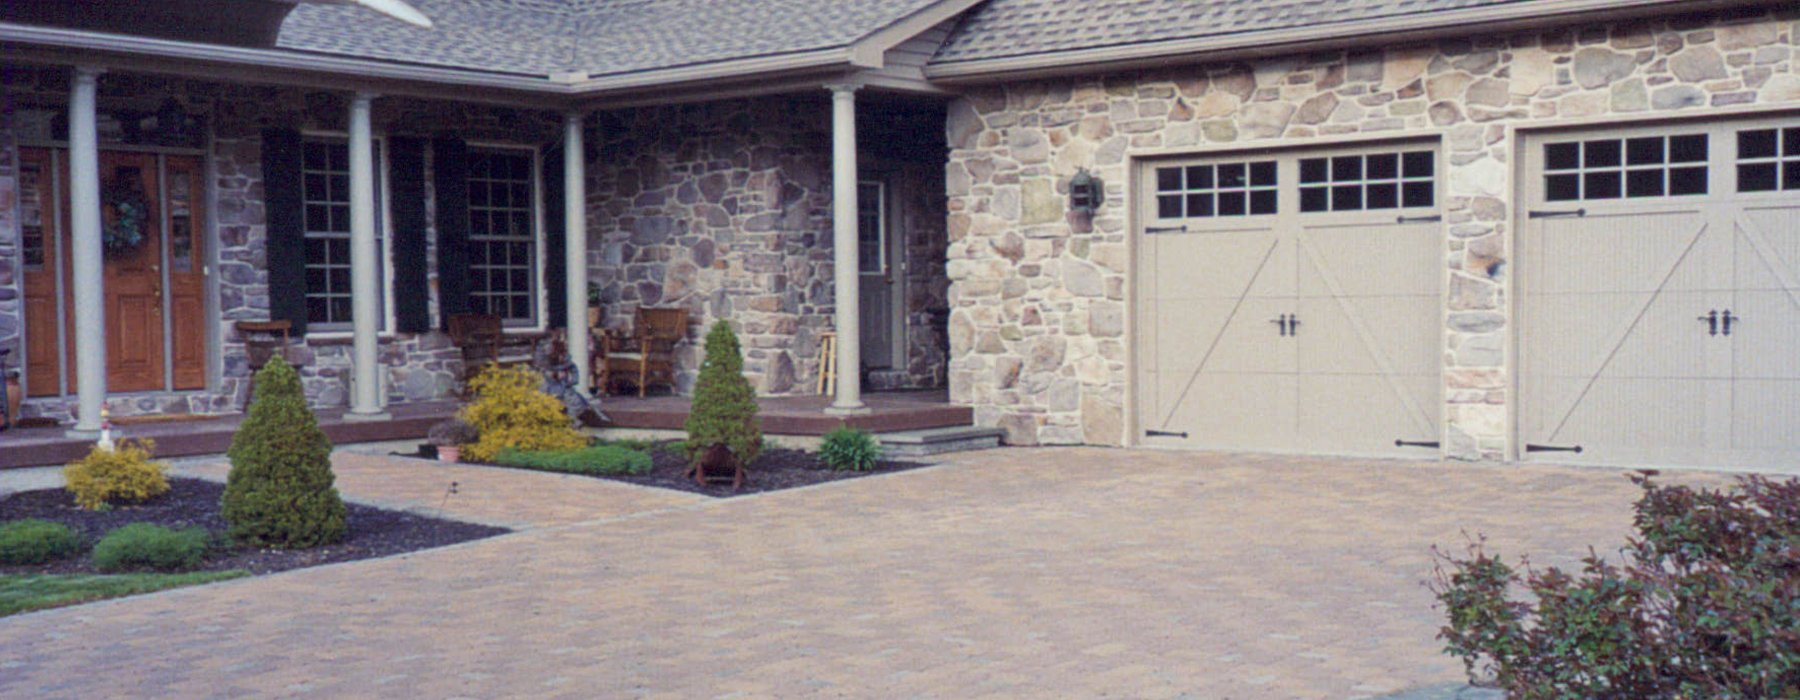 Stone house with garage